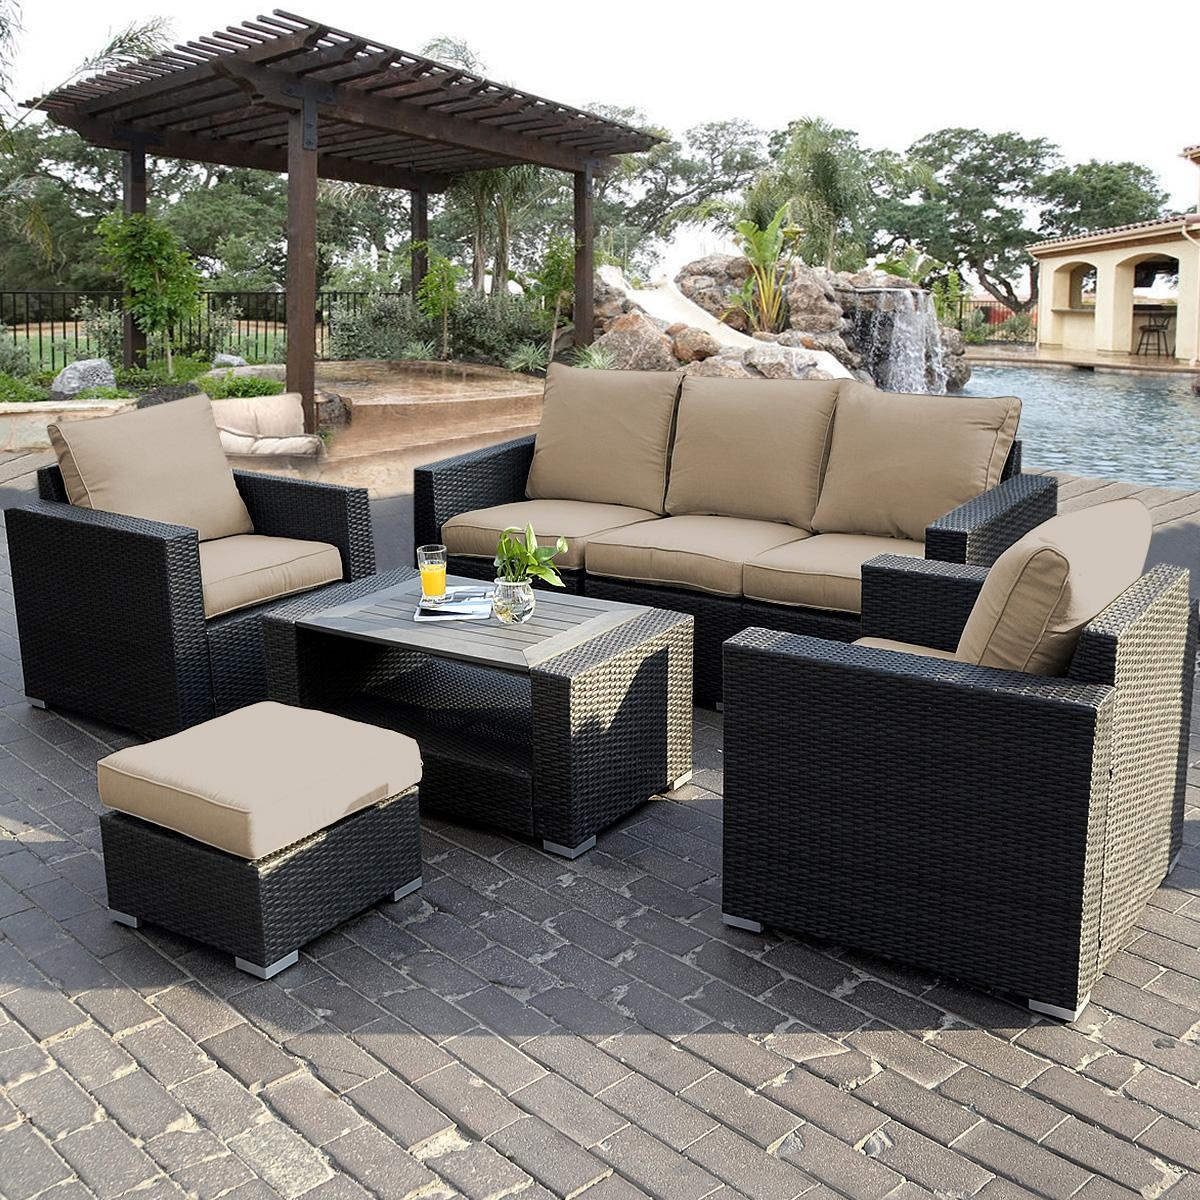 Patio Sectional Furniture Walmart | Patio Decoration Regarding Cheap Outdoor Sectionals (Image 10 of 15)